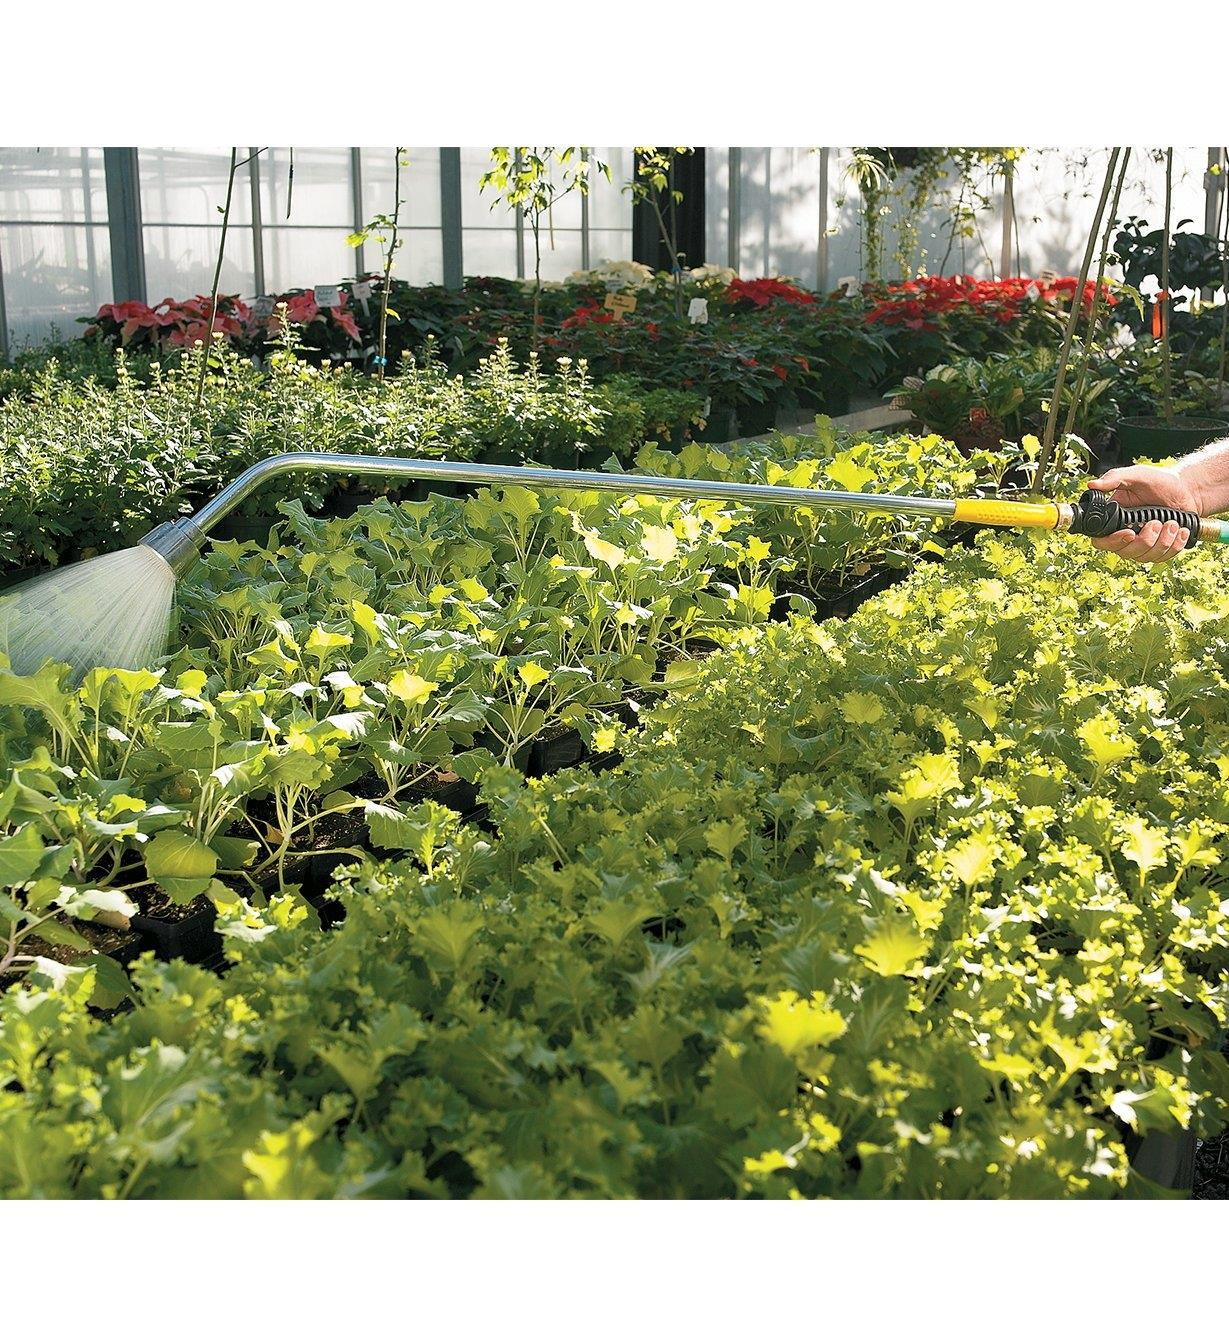 Watering flats in a greenhouse with the water wand